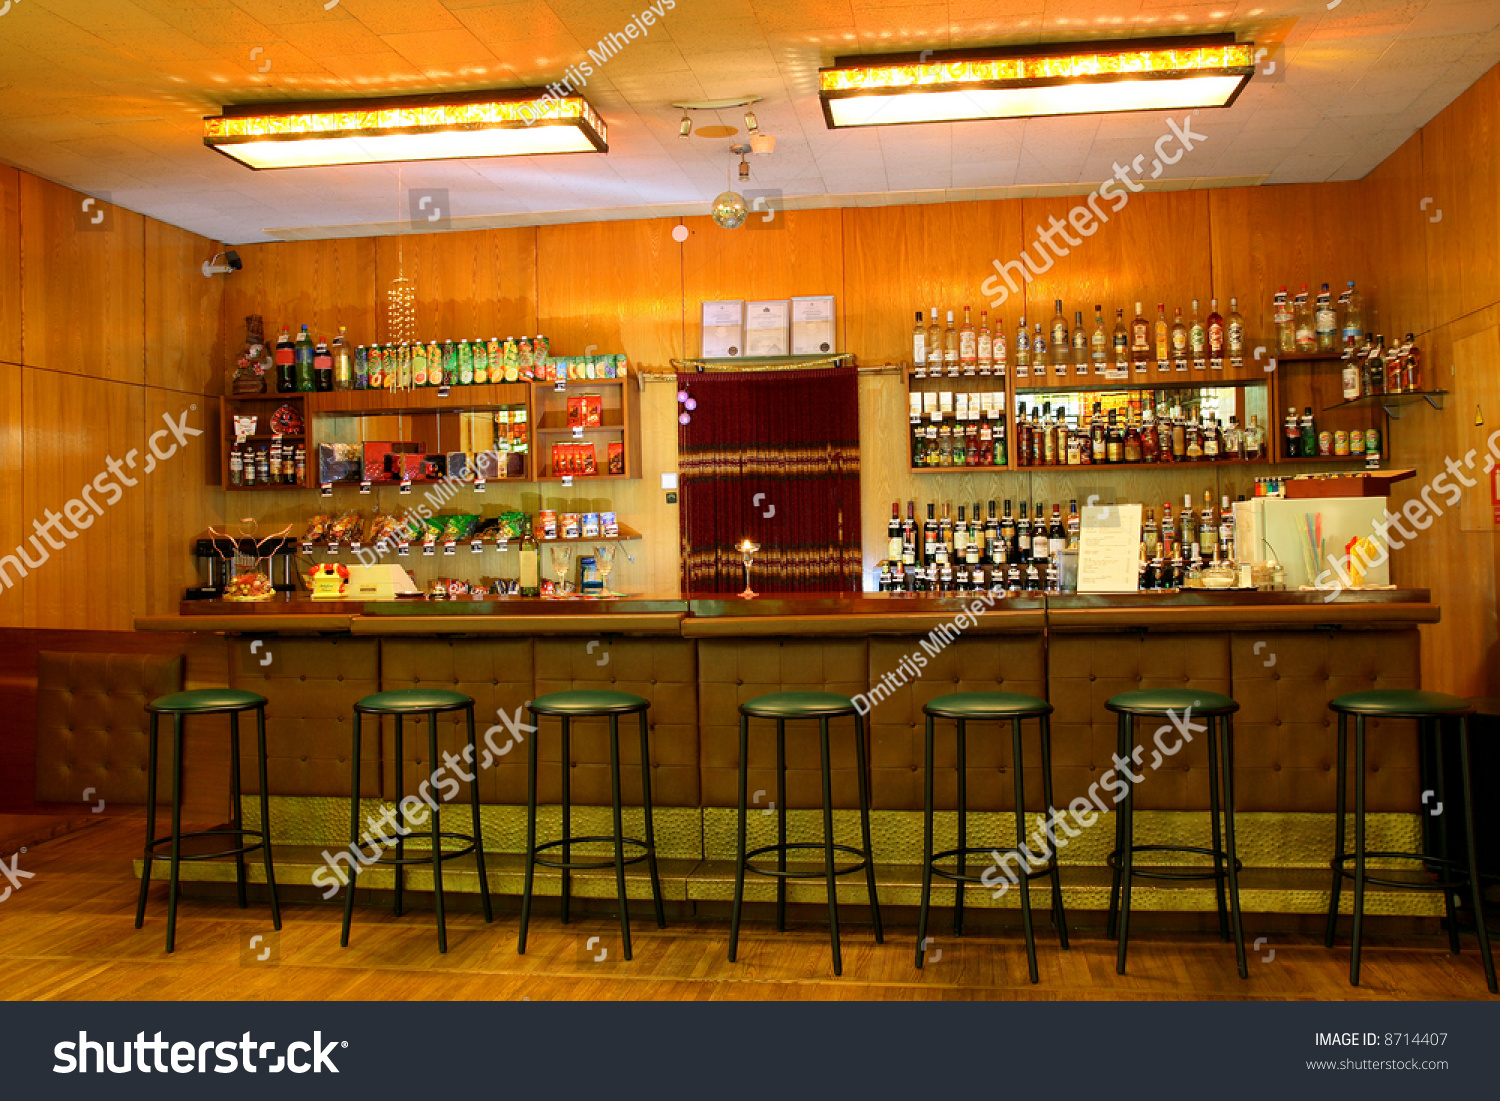 Classic Bar Counter Interior With Empty Seats